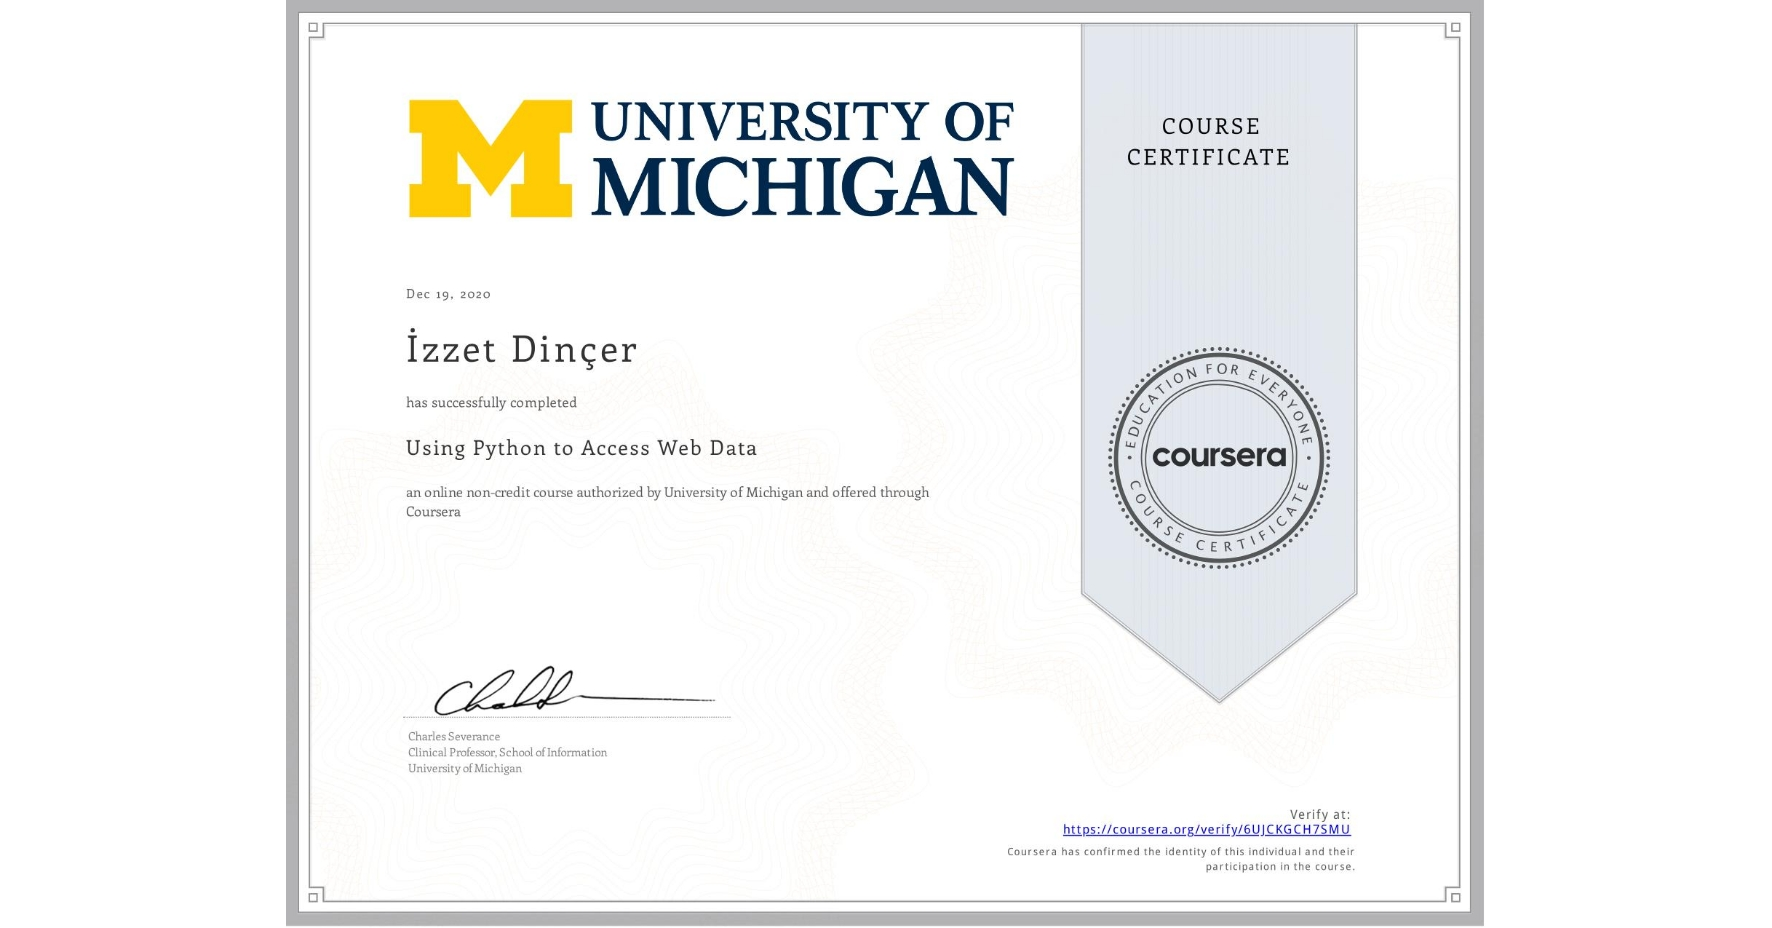 View certificate for İzzet Dinçer, Using Python to Access Web Data, an online non-credit course authorized by University of Michigan and offered through Coursera